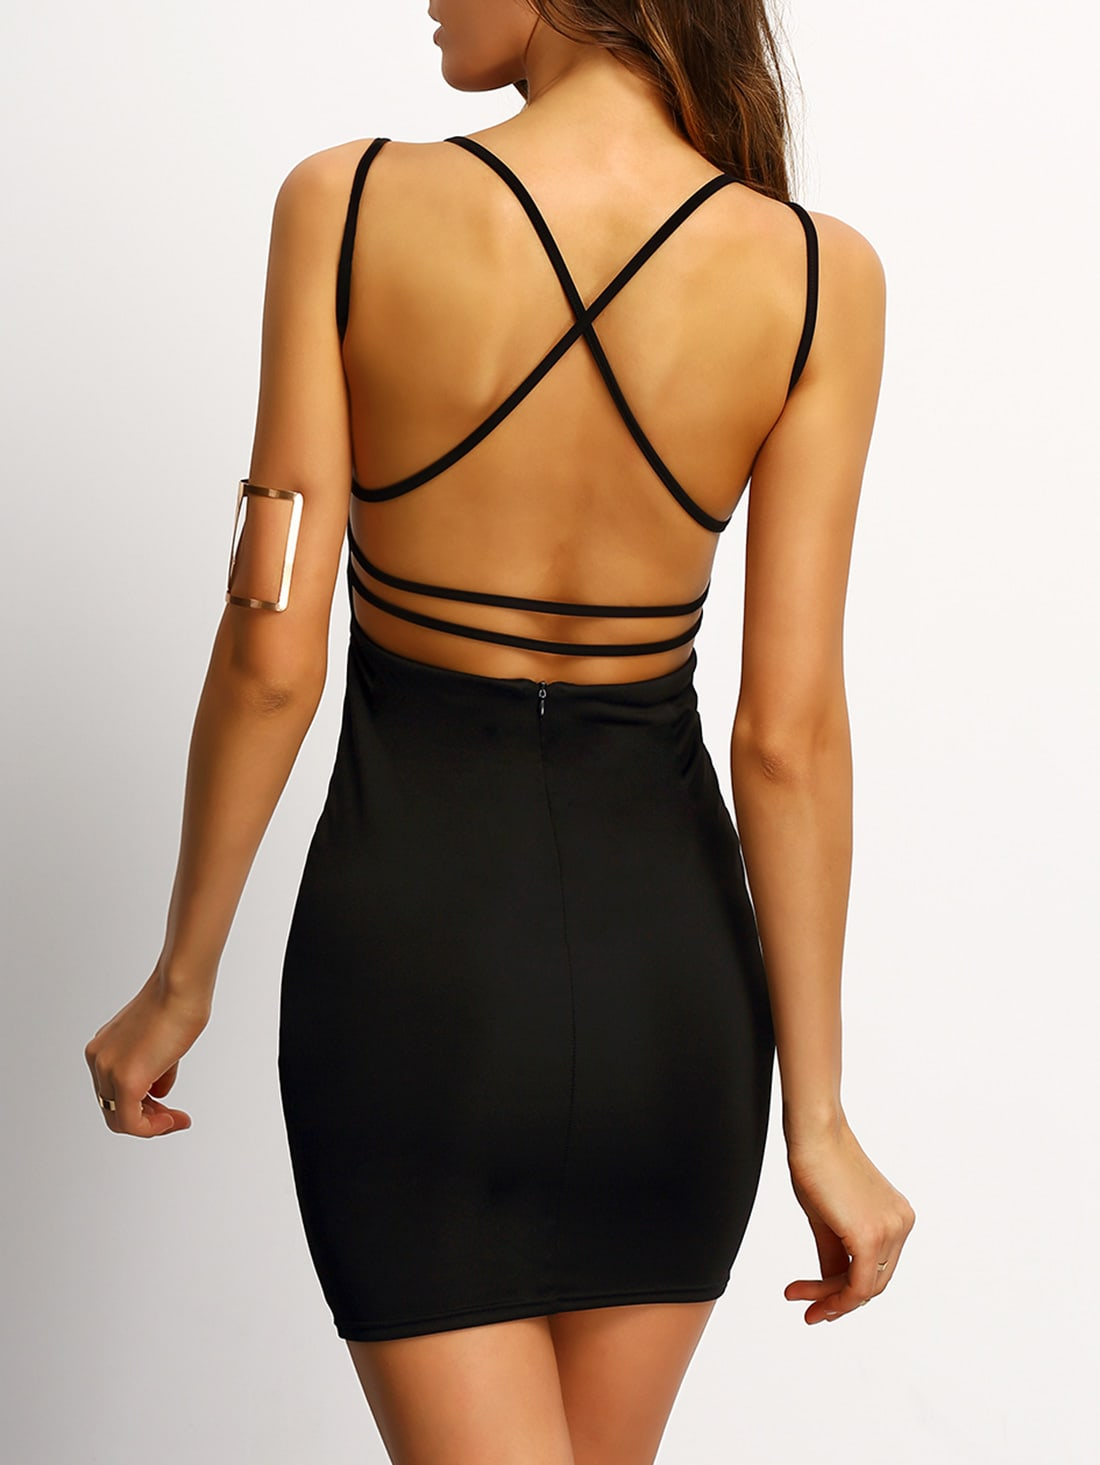 698051626d Black Crisscross Back Bodycon Dress EmmaCloth-Women Fast Fashion Online